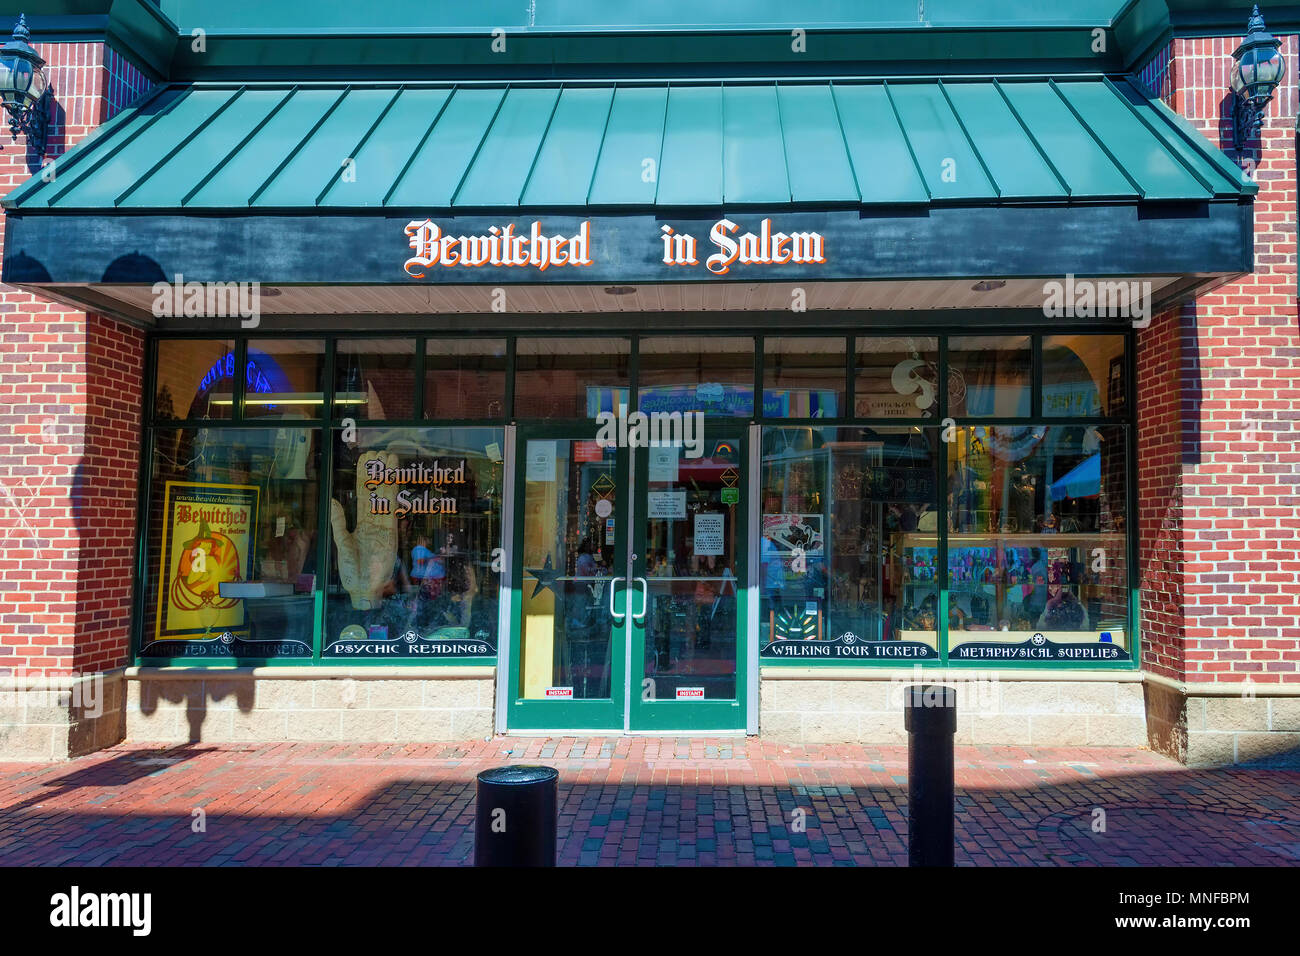 Salem, Massachusetts,USA - September 14, 2016: Novelity shop 'Bewitched In Salem' one of many in the famous historical town of Salem, Massachusetts. - Stock Image